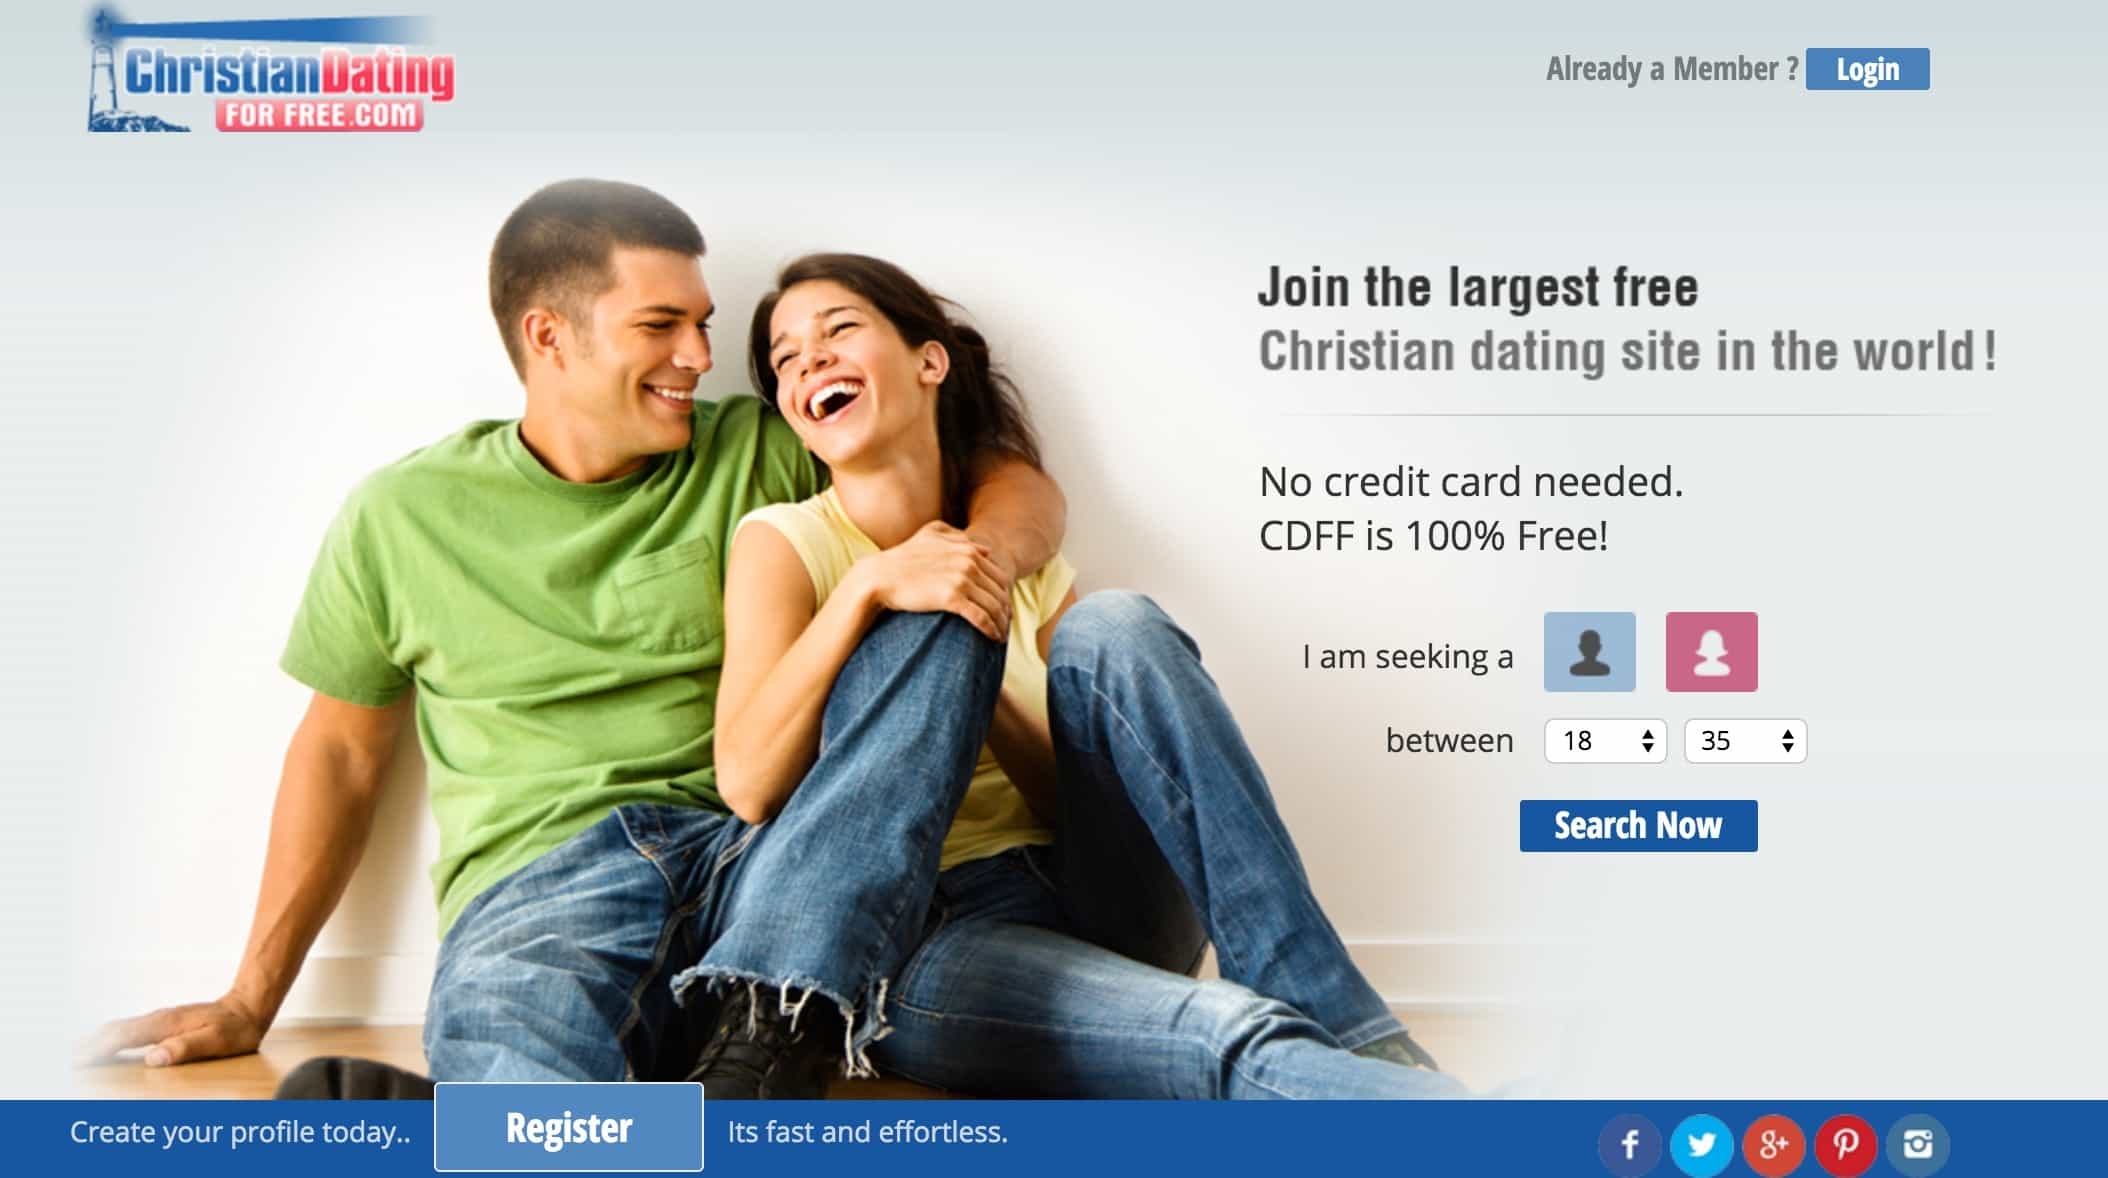 Free Christian Seniors Online Dating Site for Love Faith and Fellowship